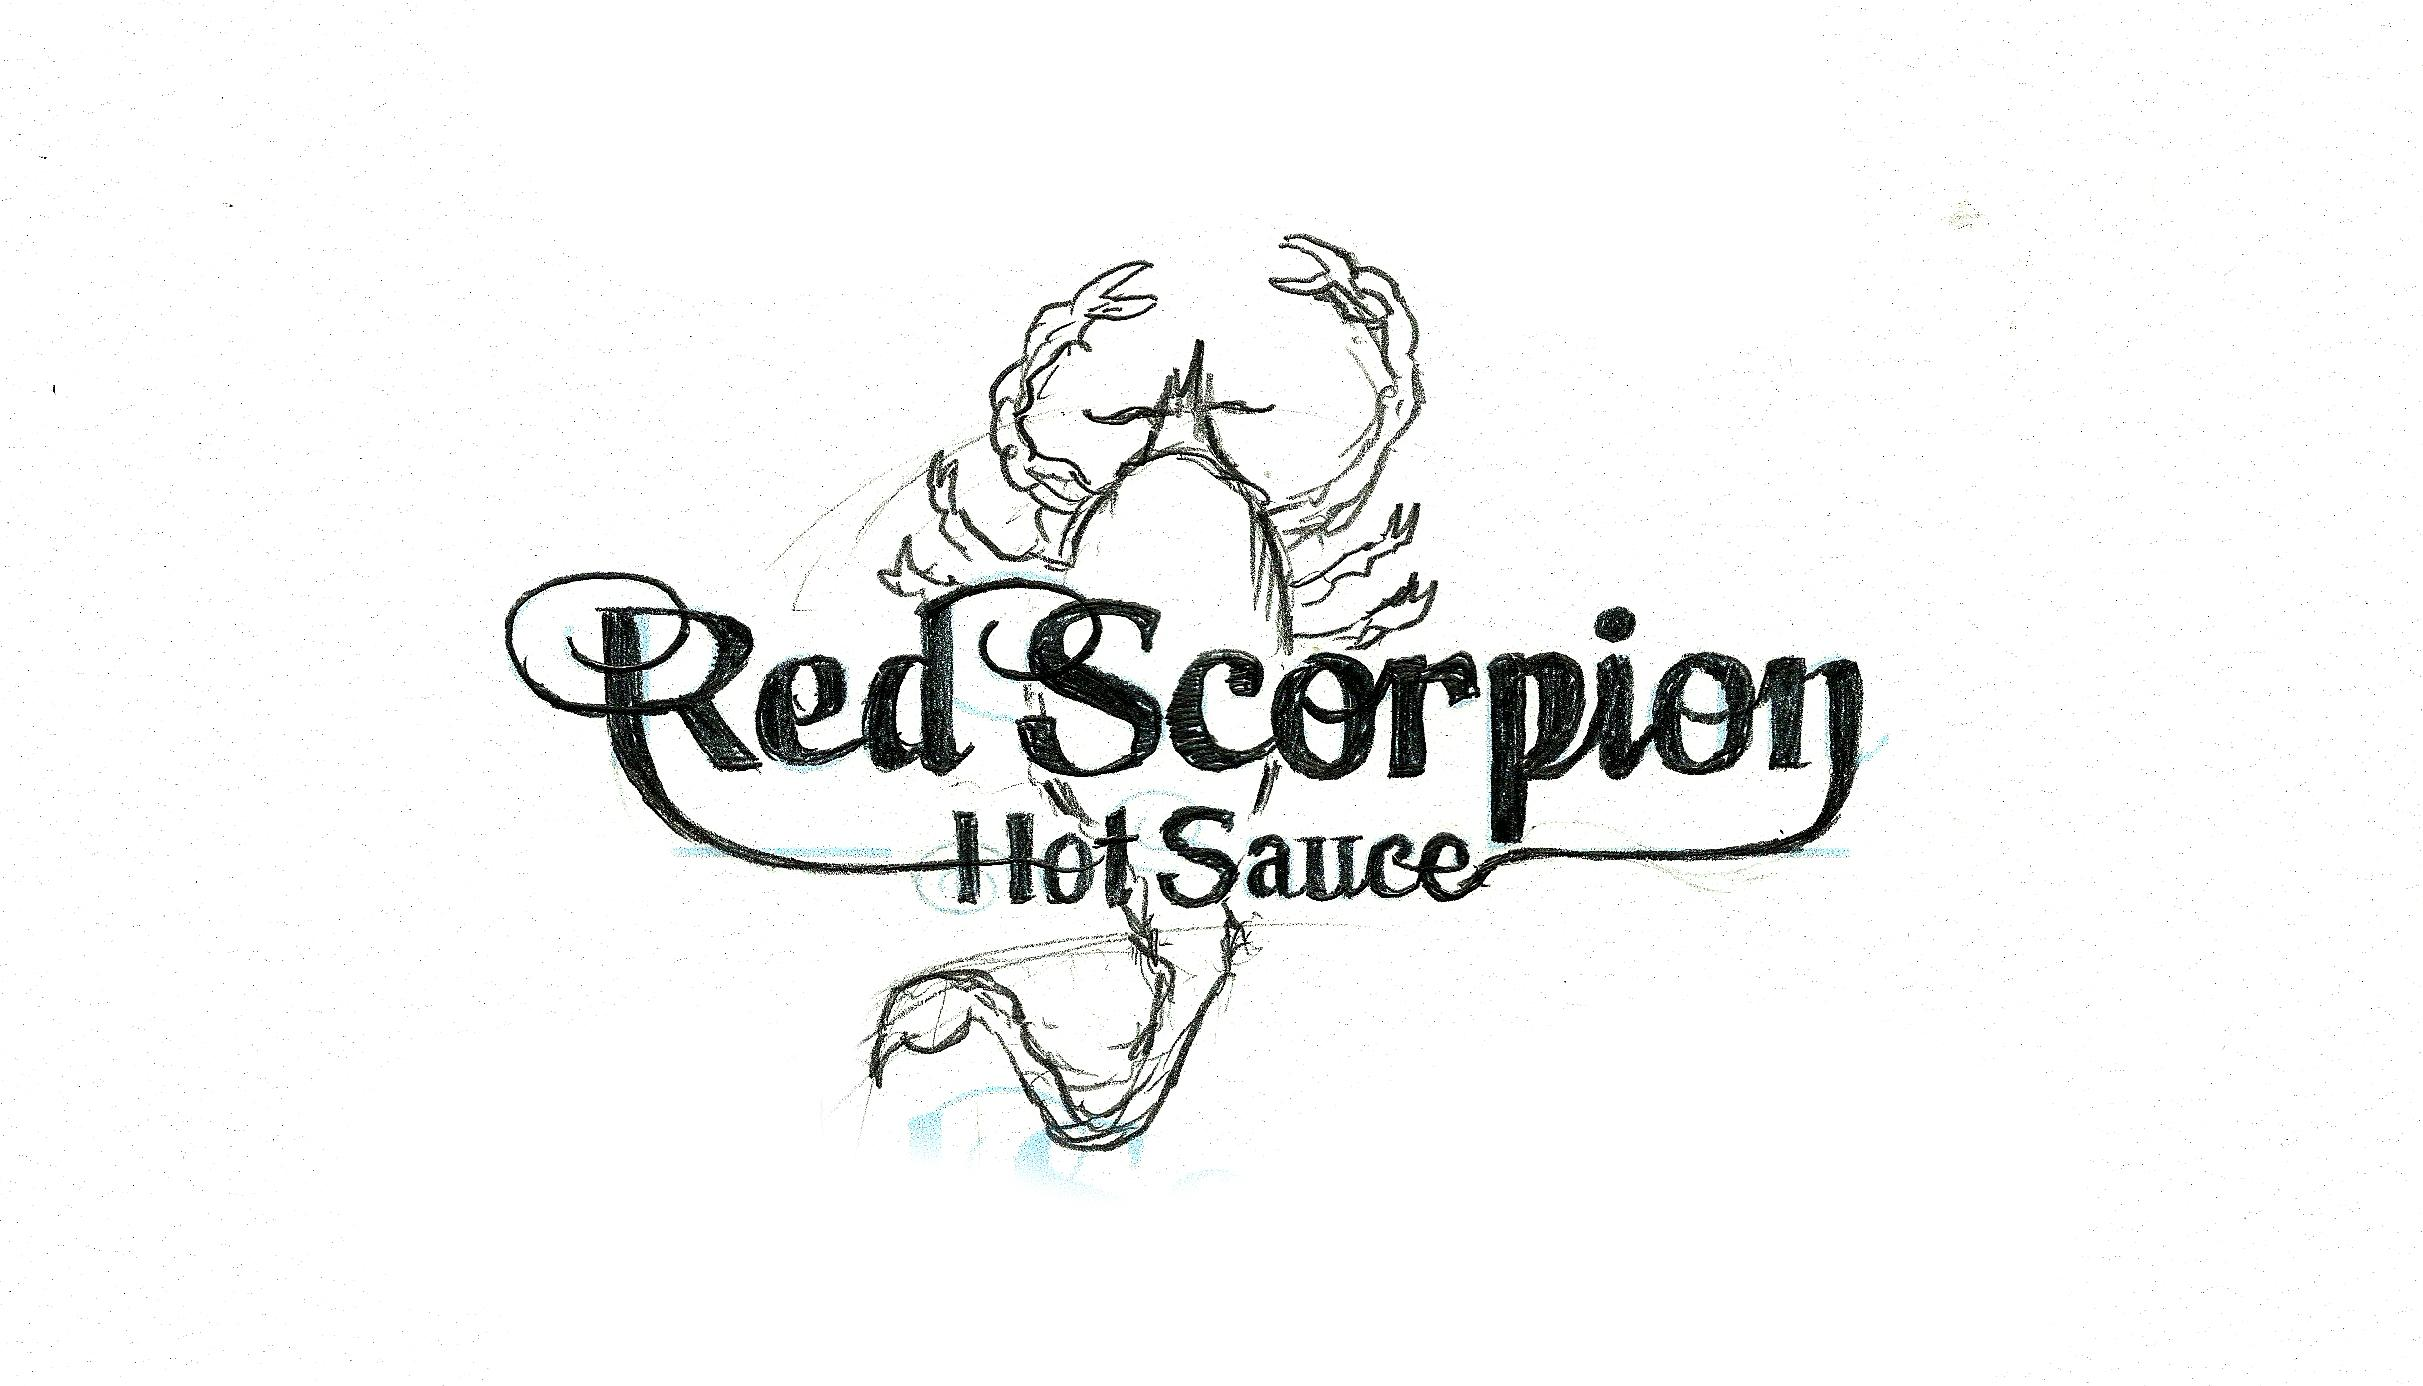 Red Scorpion hot sauce - image 3 - student project